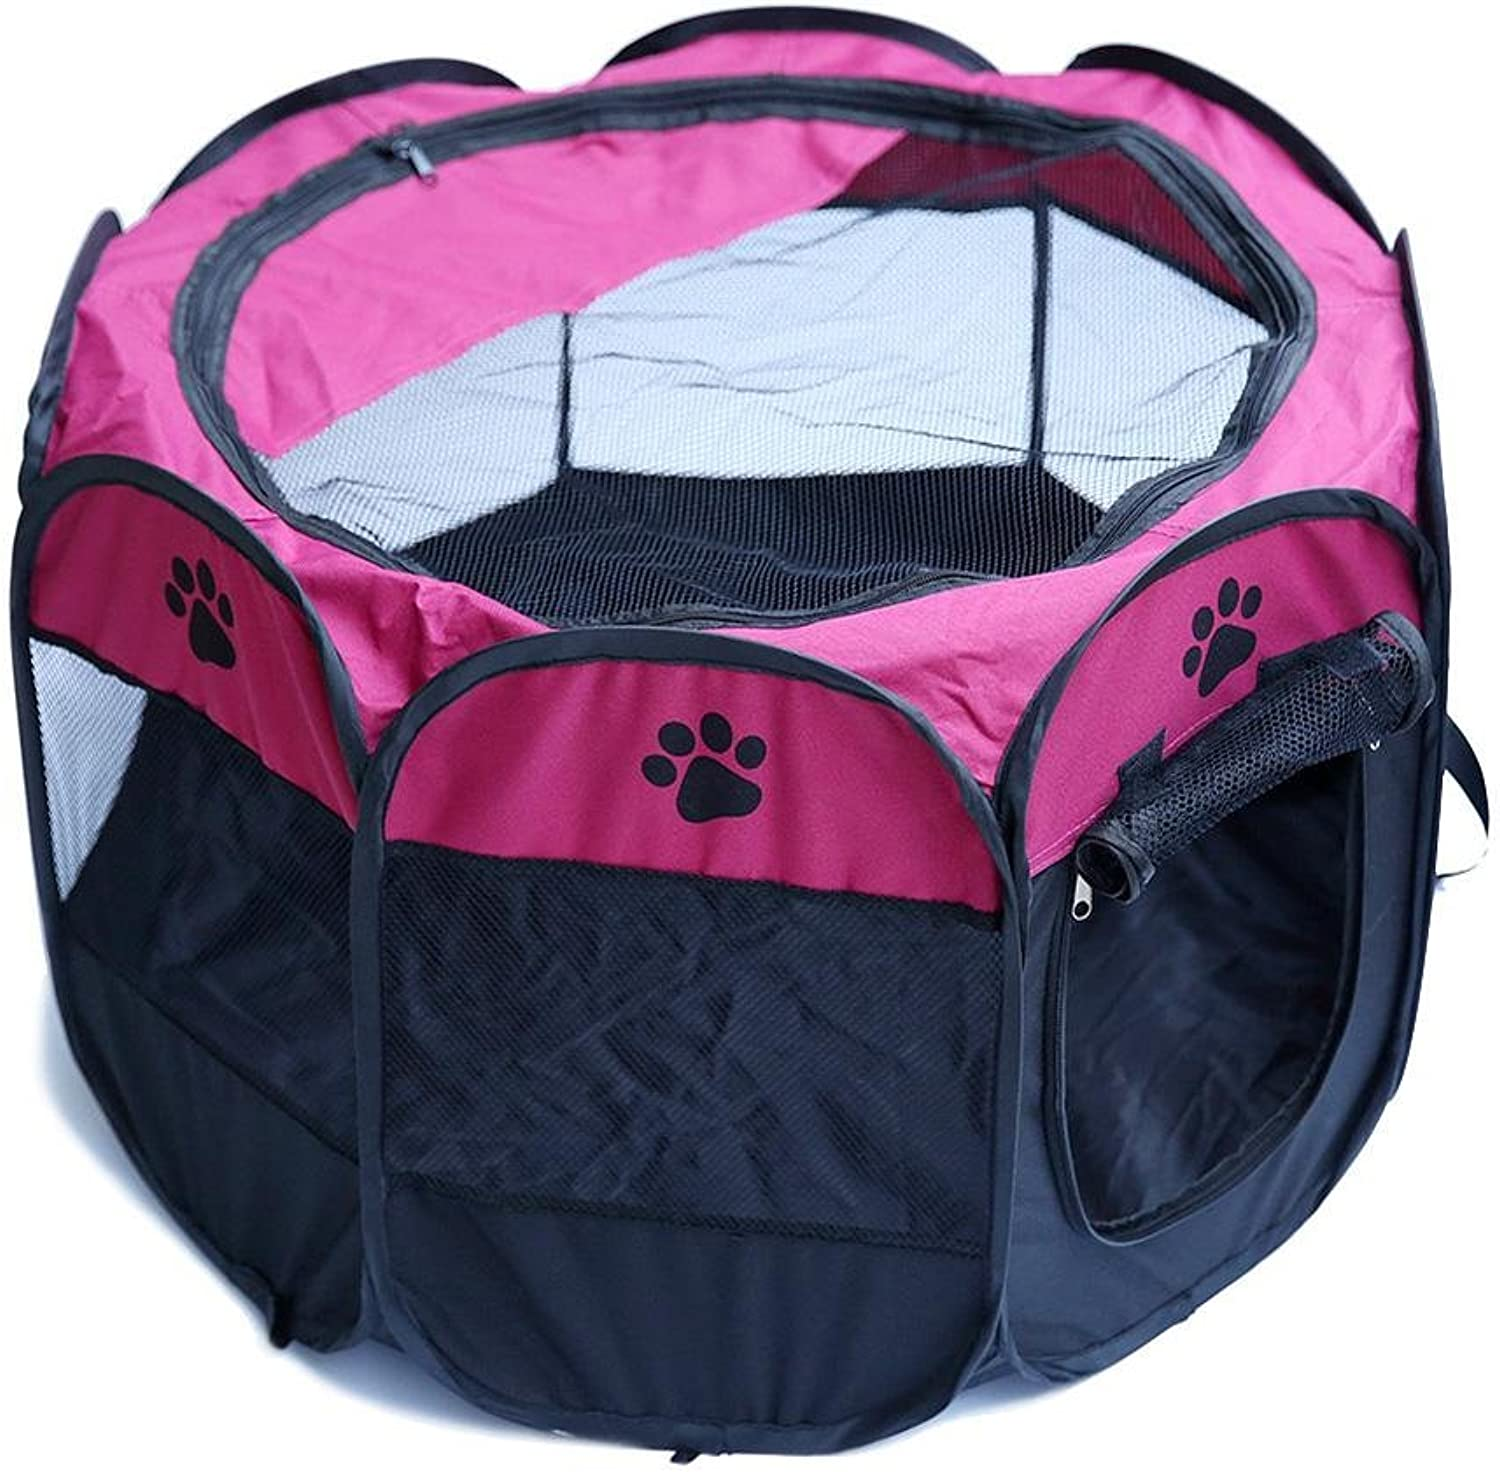 Pet Myyxt Play Pen Portable Foldable Puppy Fences Tent Easy to Assemble Made of 600D Oxford cloth and Steel Ring Cages